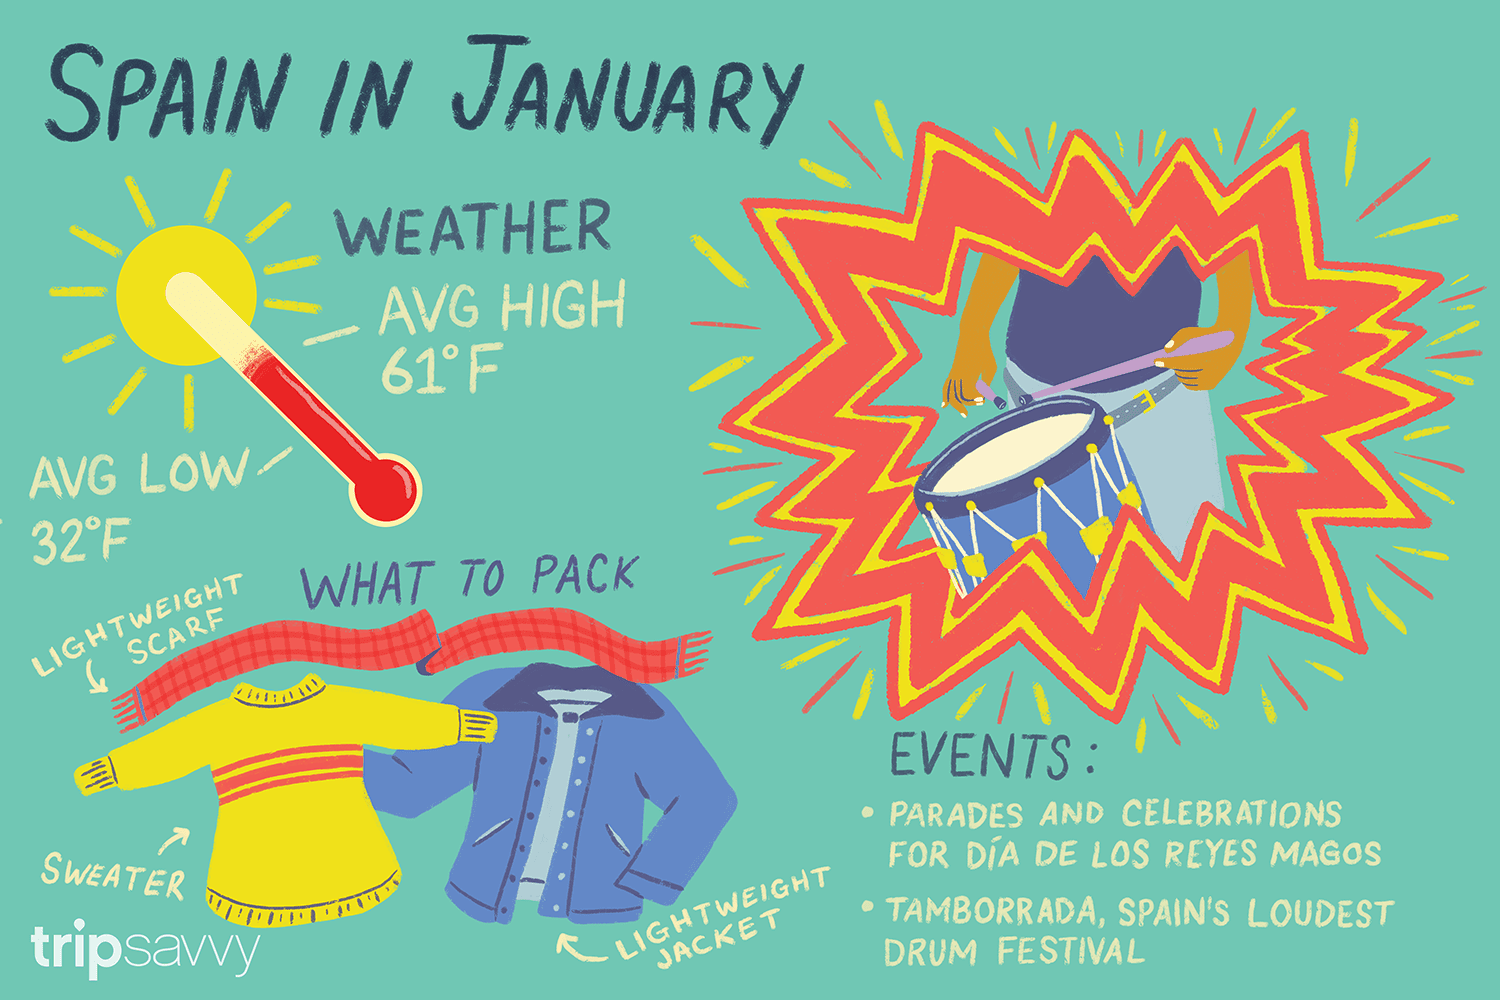 January in Spain: Weather and Event Guide